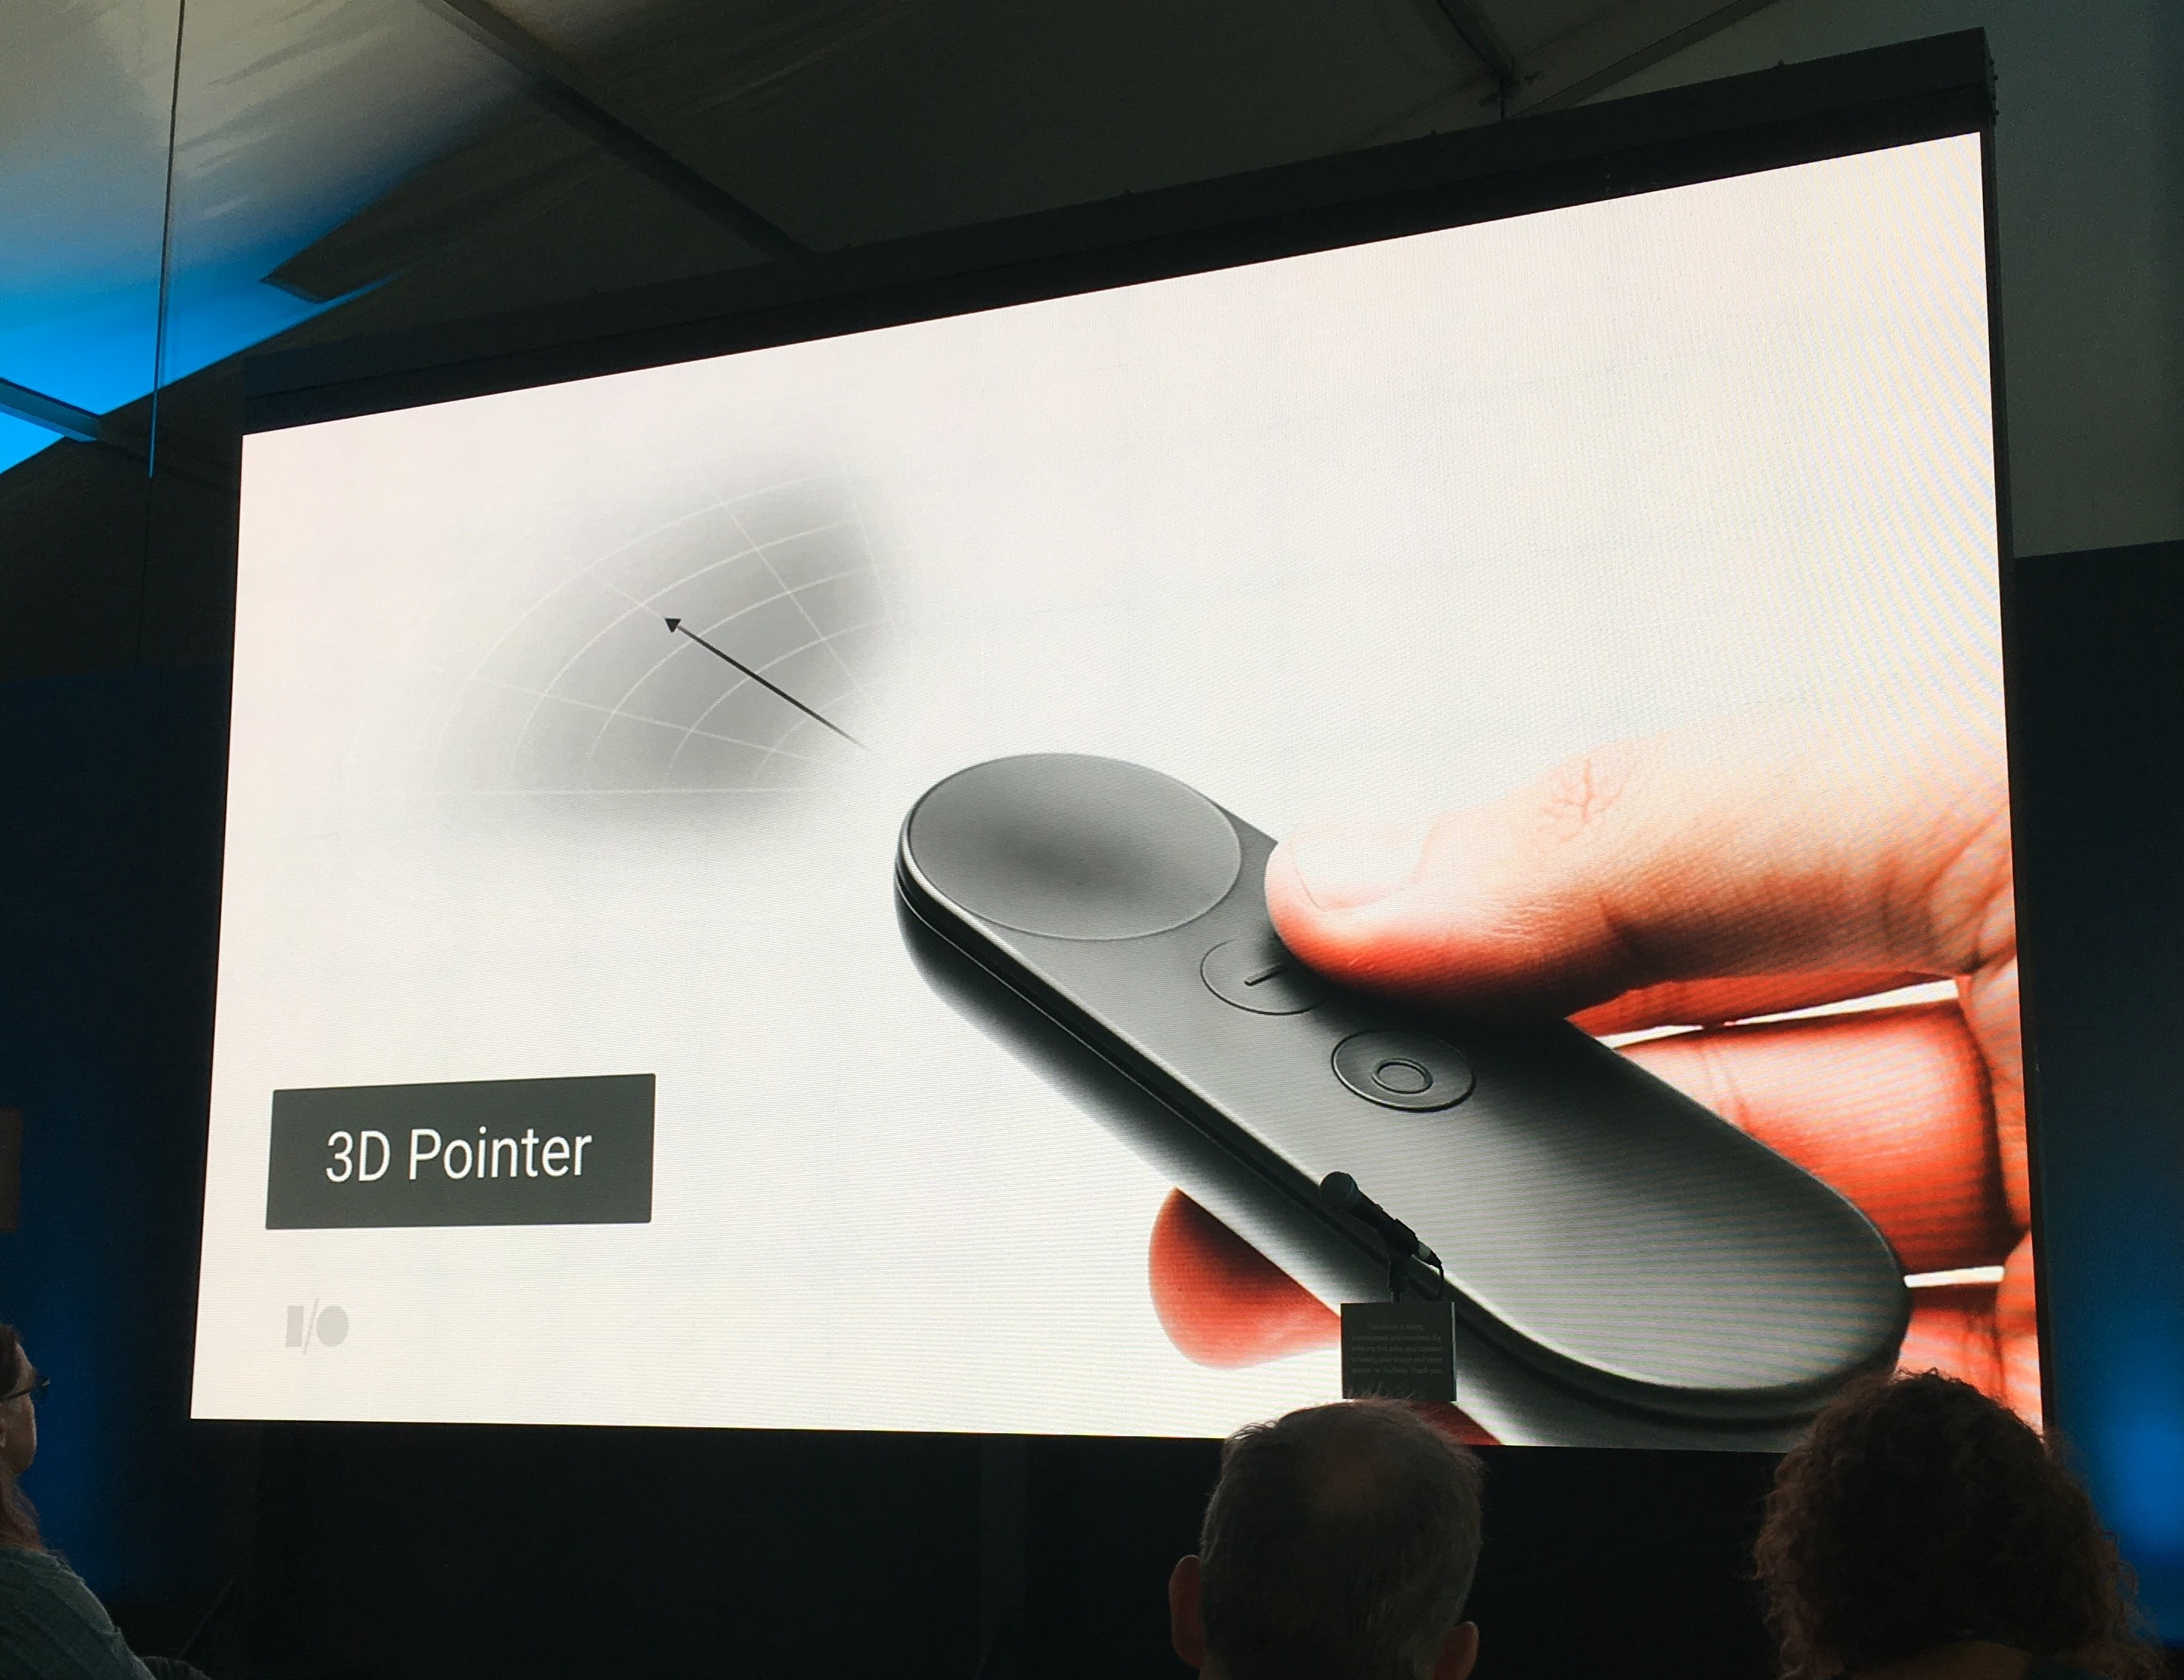 The Google Daydream controller.